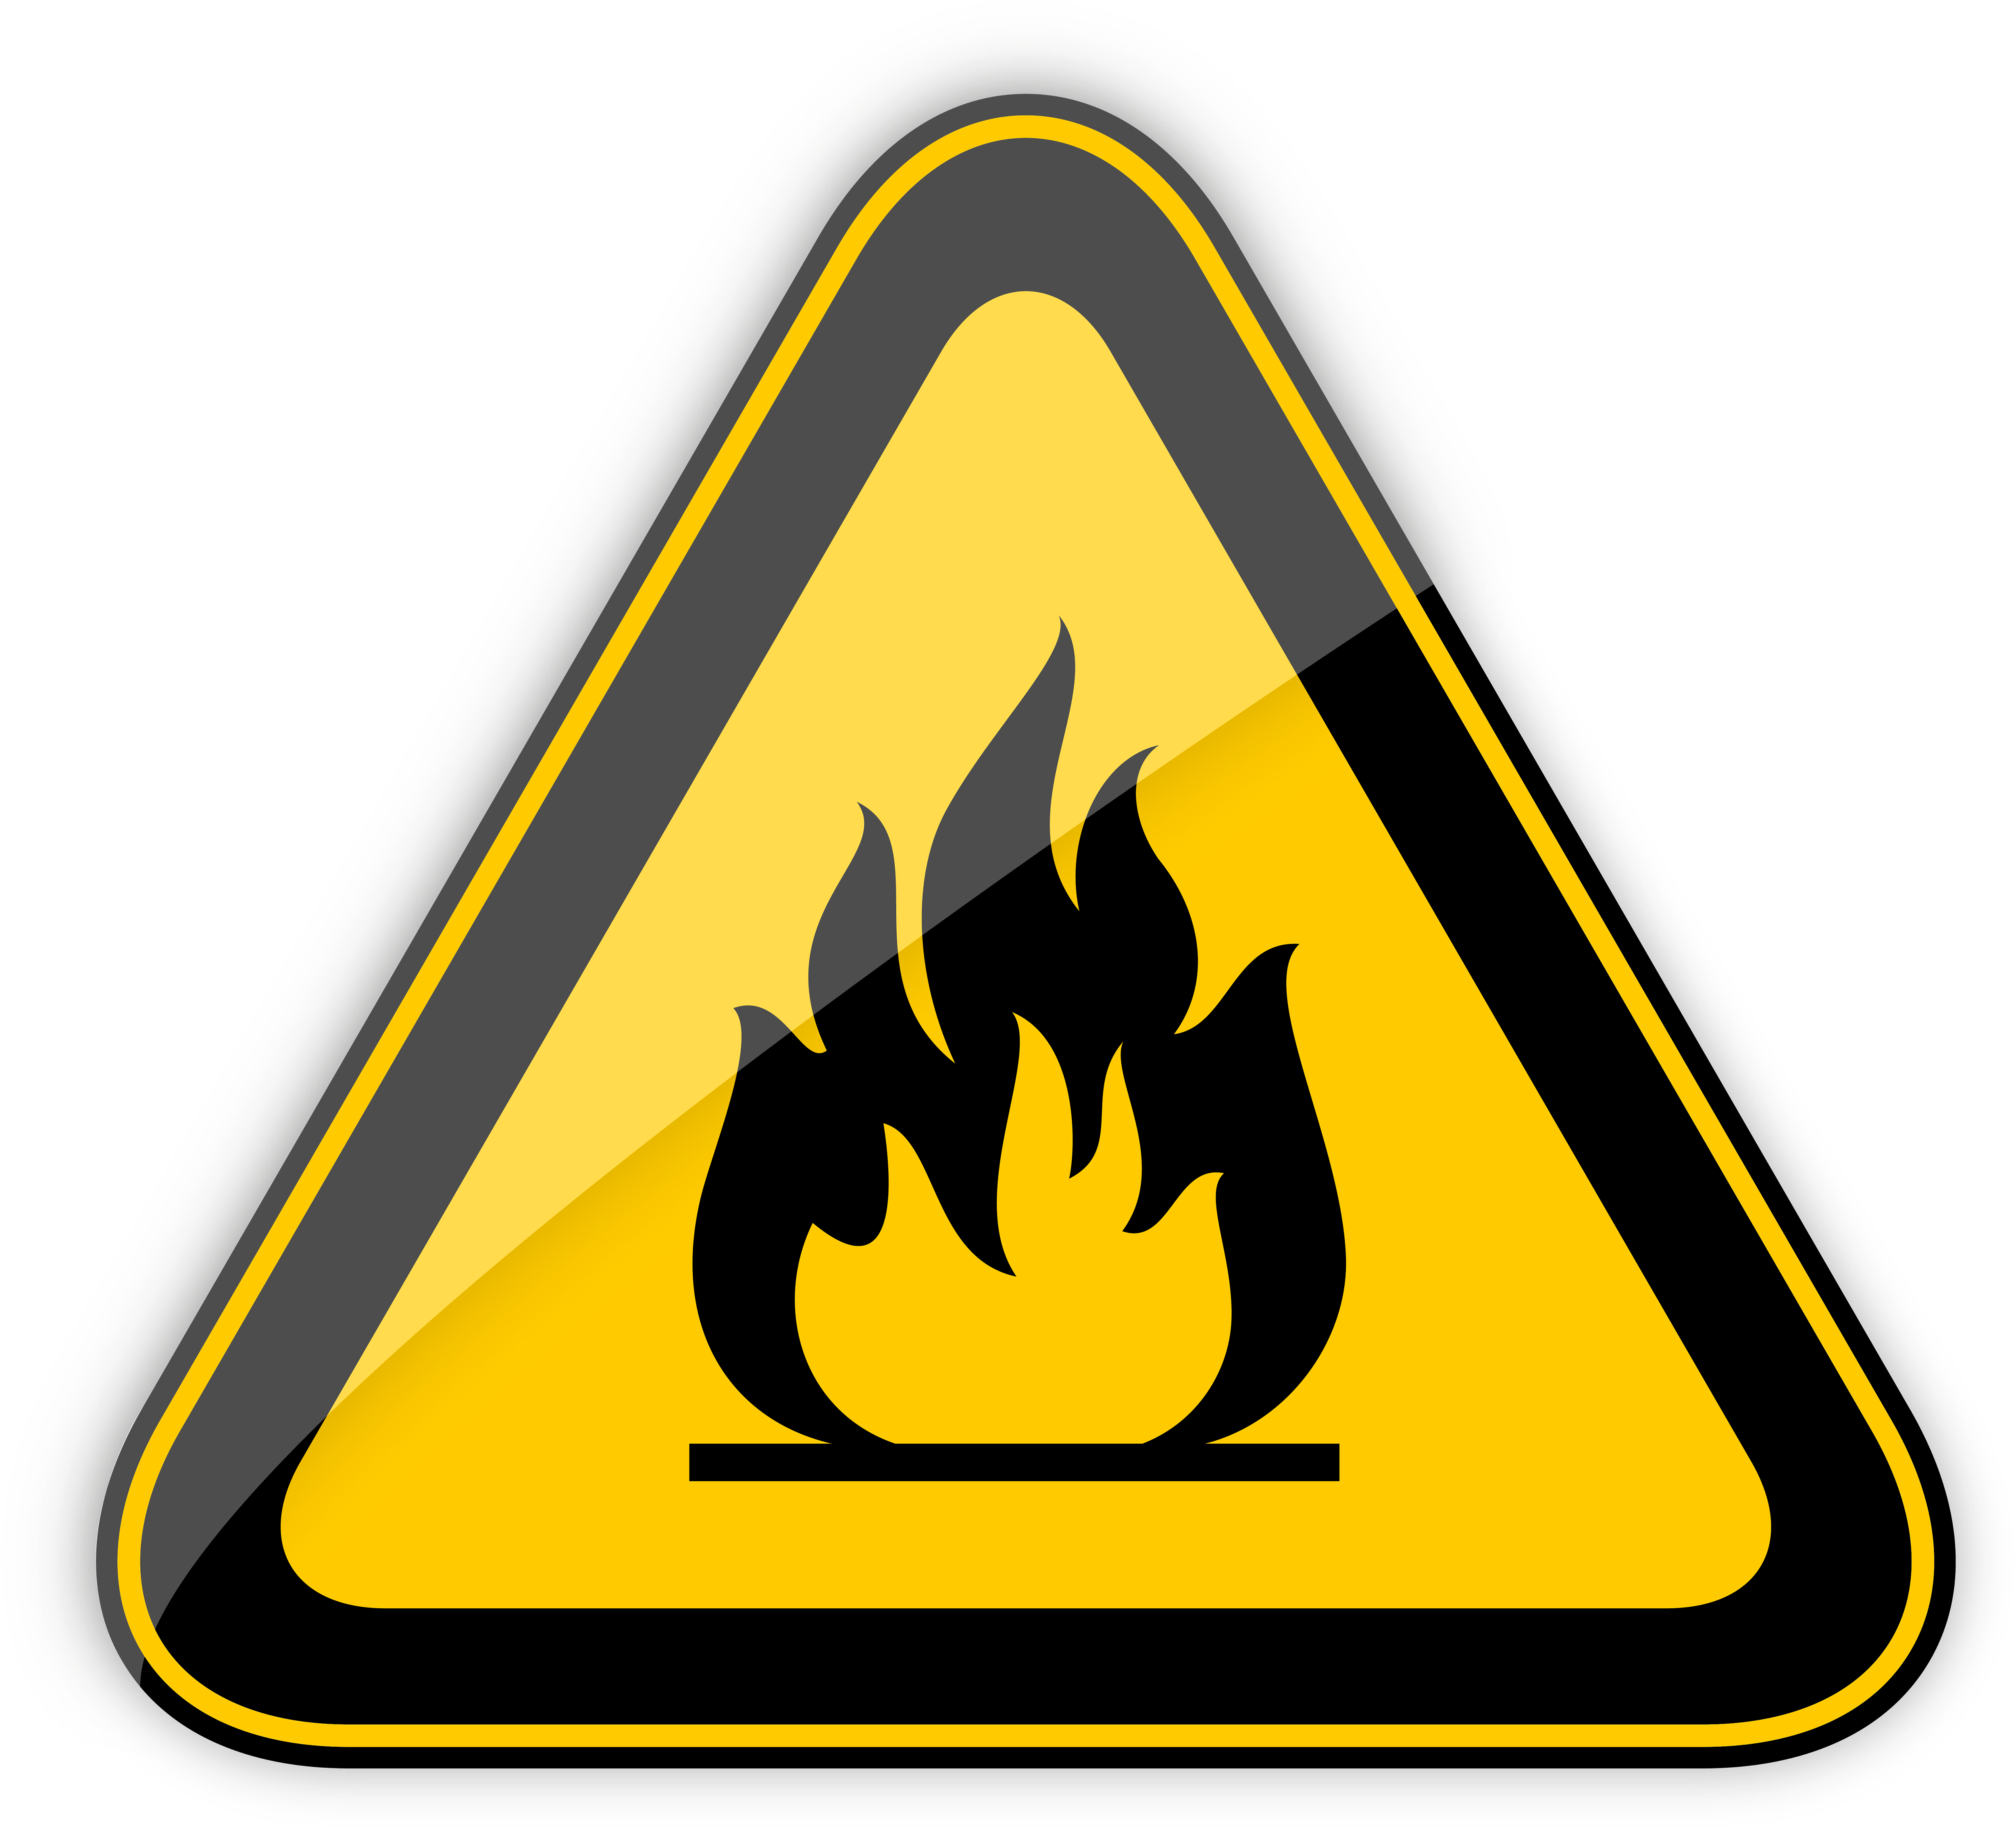 download clipart, highly flammable warning sign png clipart best web clipart #31789